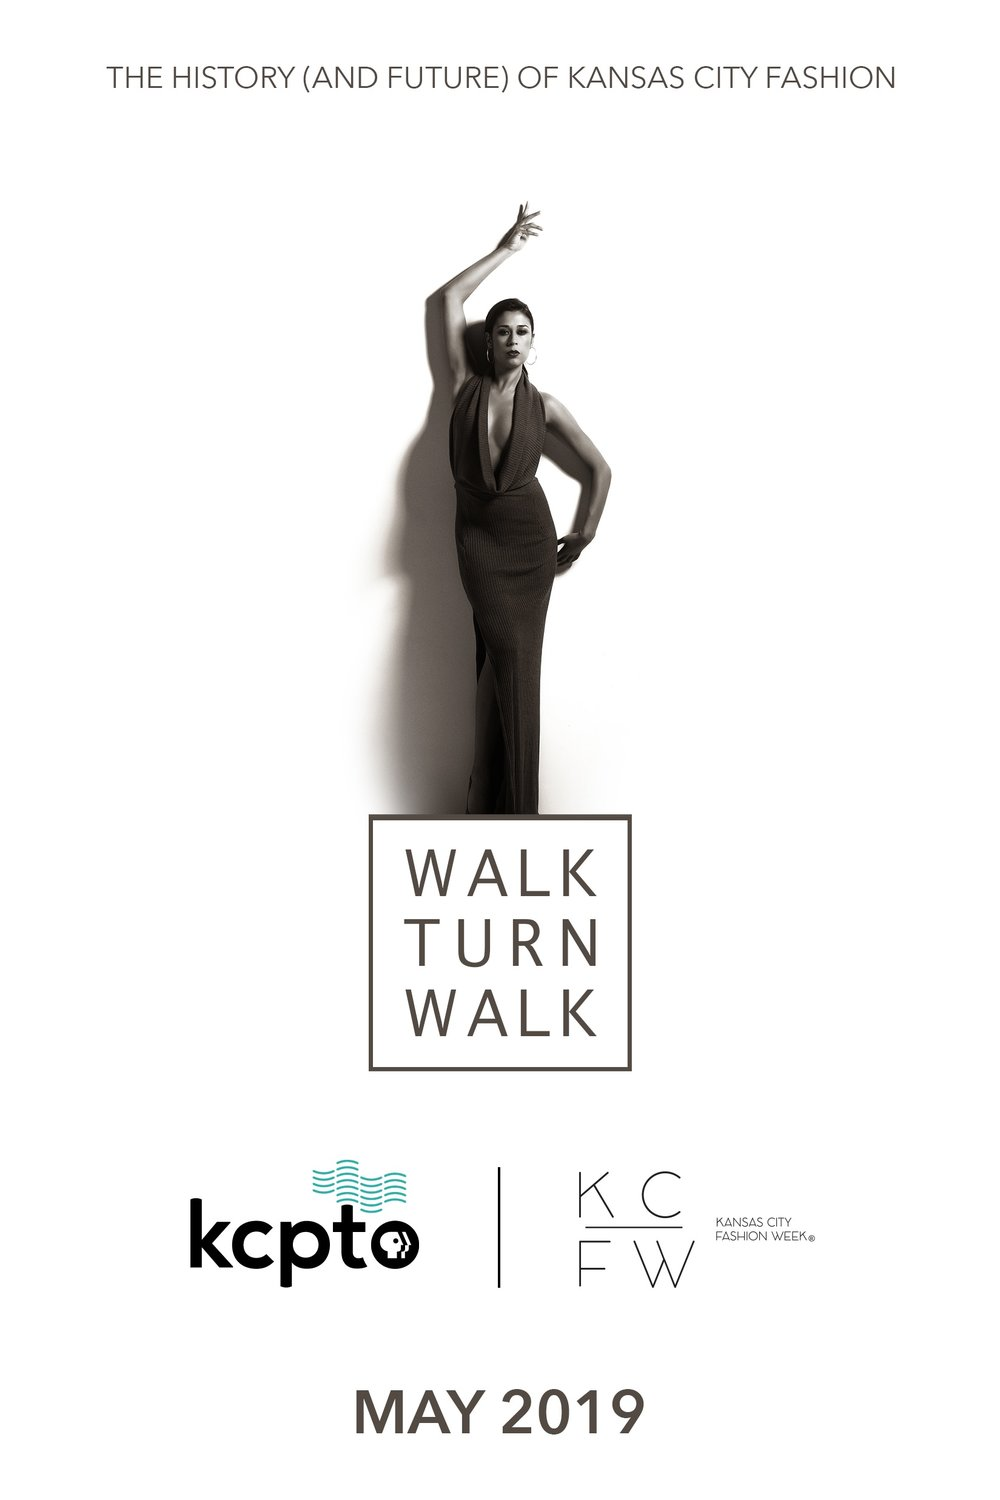 f49b59ddc5 Kansas City Fashion Week to be Subject of KCPT Documentary